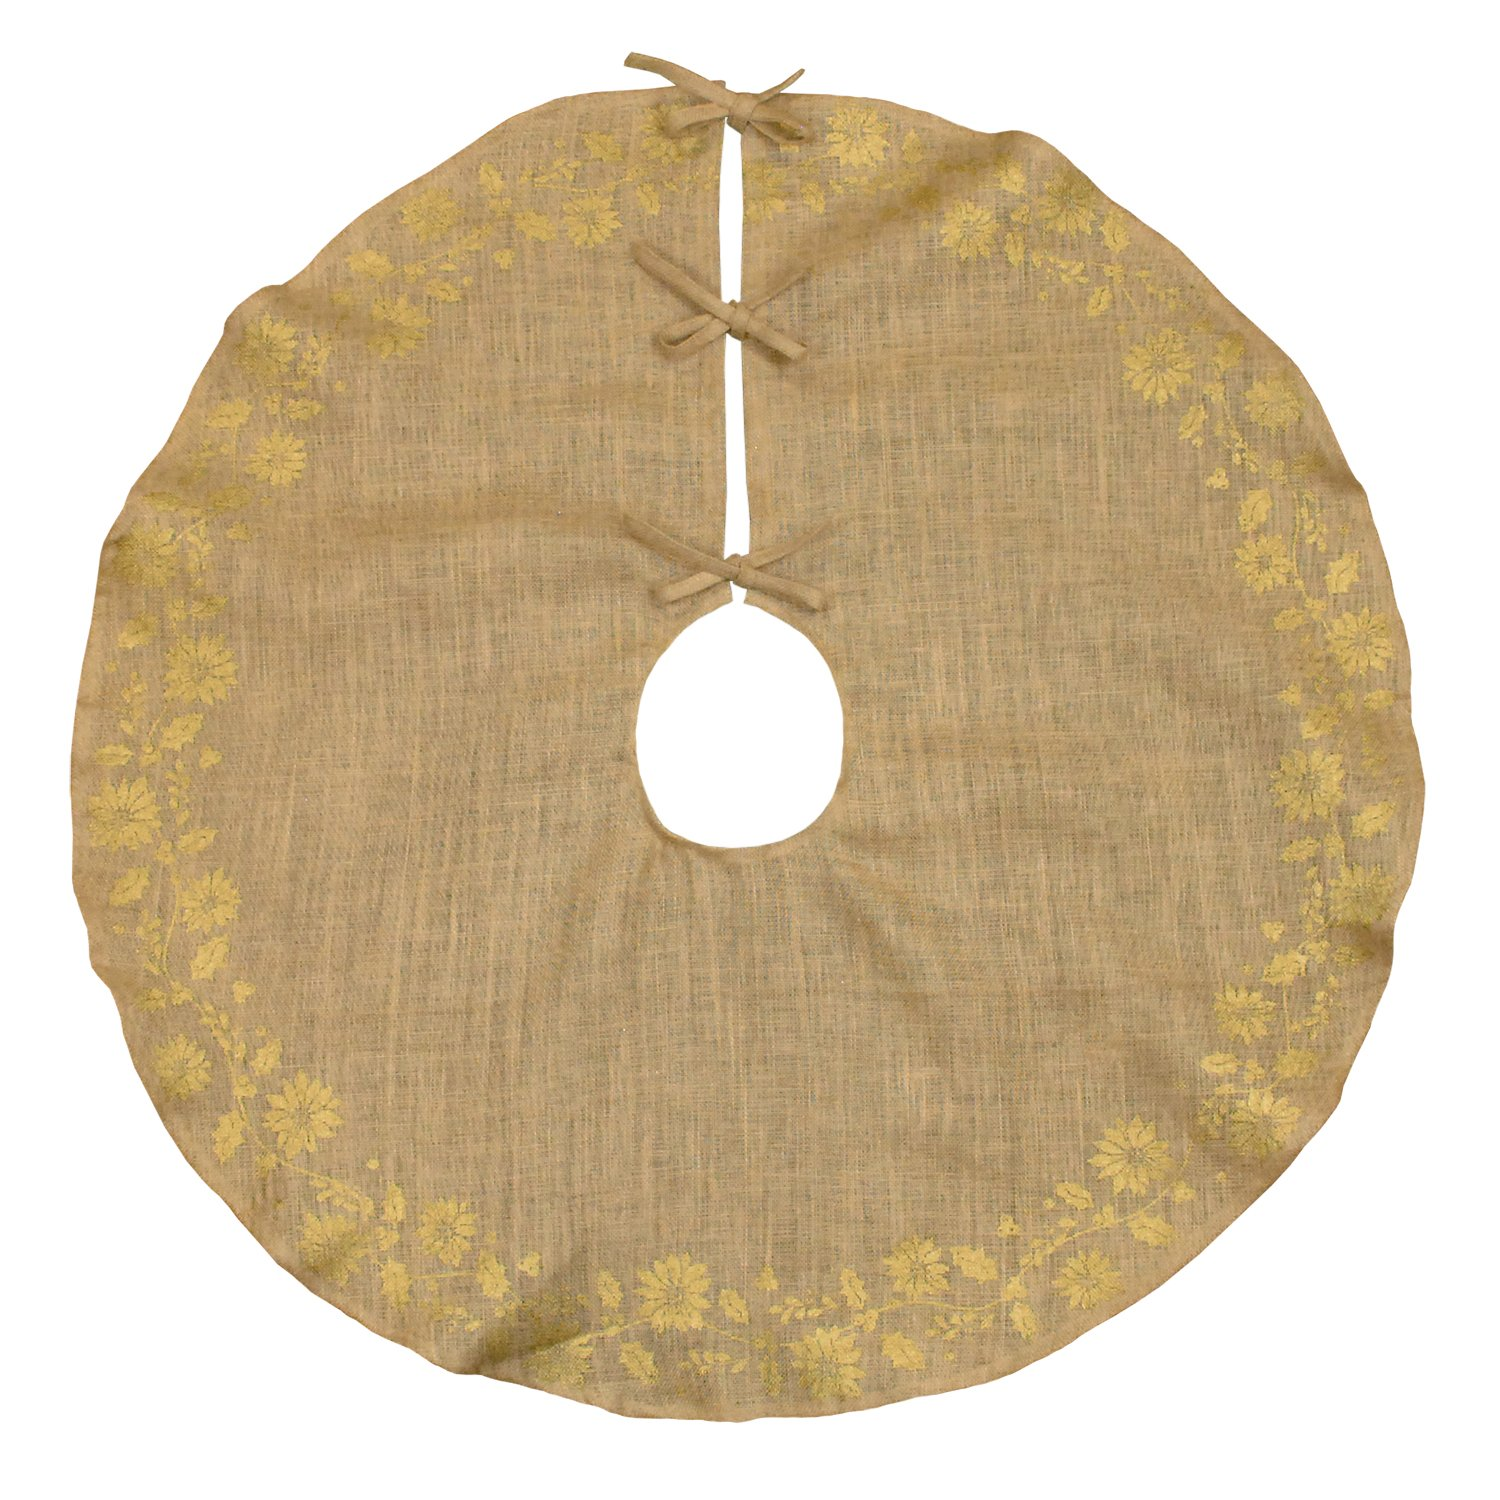 DII Jute Traditional Burlap Christmas Under The Tree Skirt Holiday Décor, Perfect For Any Tree, 47 Round - Gold Holly Printed CAMZ34232